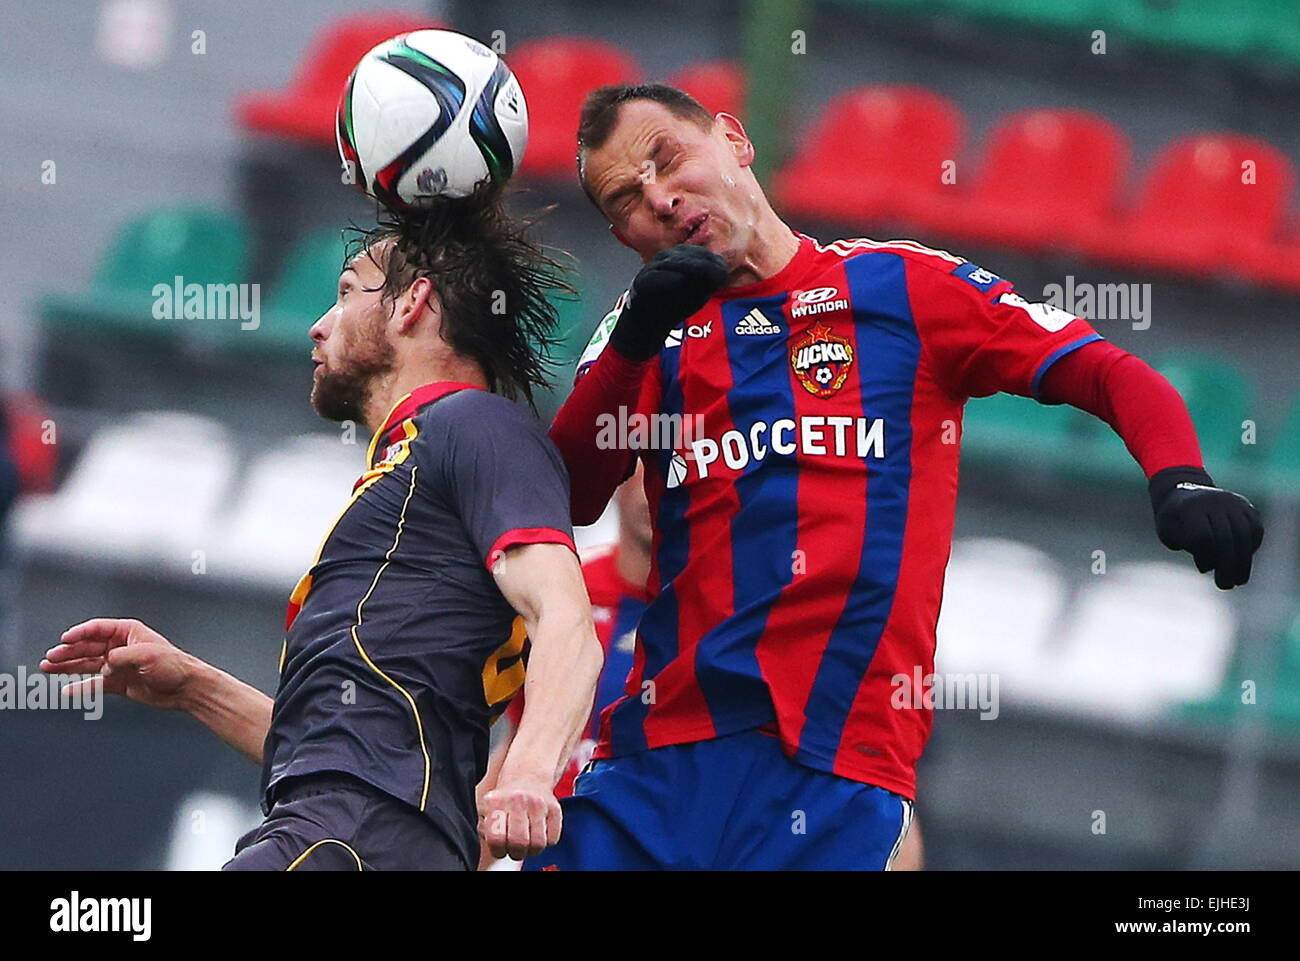 Moscow, Russia. 21st Mar, 2015. Arsenal's Leonid Boyev (L) and CSKA's Sergei Ignashevich fight for the ball - Stock Image